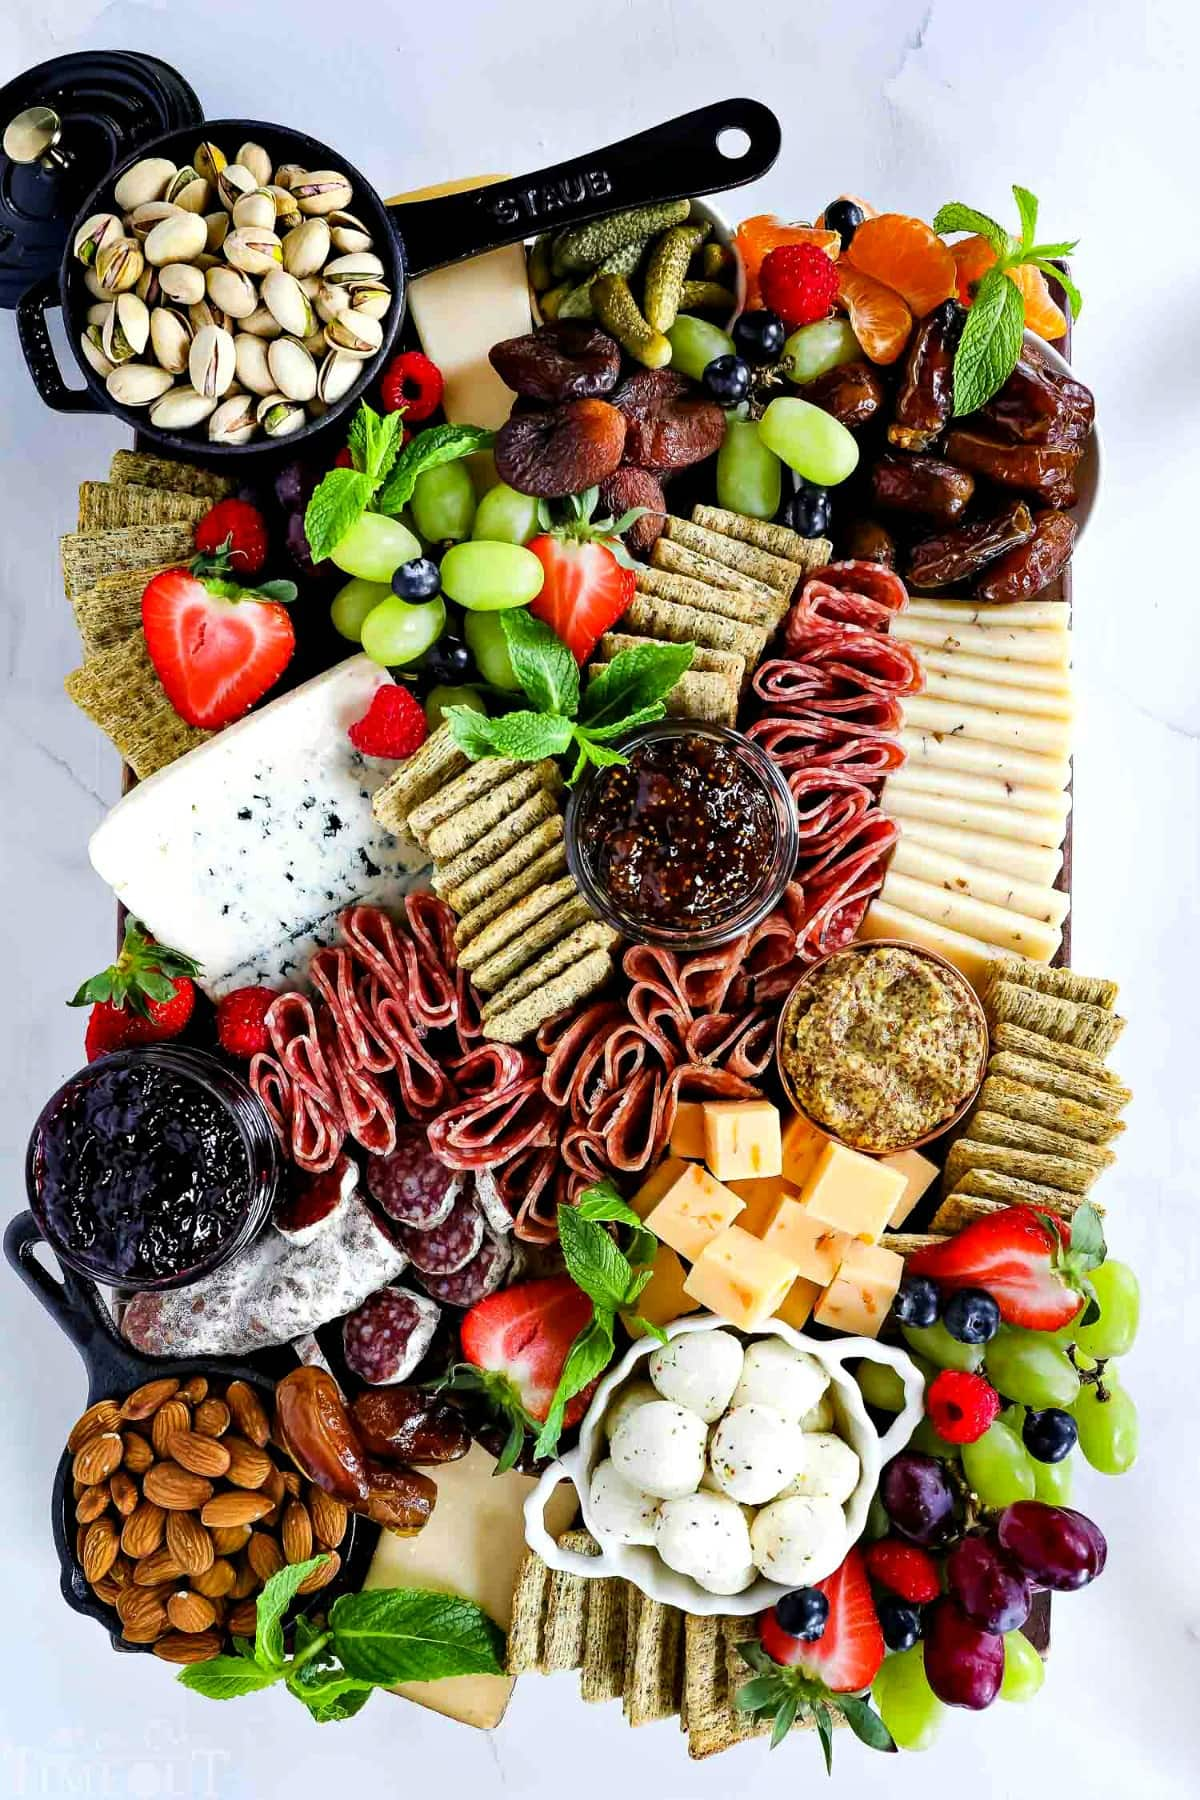 charcuterie-board-bowls-fruit-cheese-salami-nuts-crackers